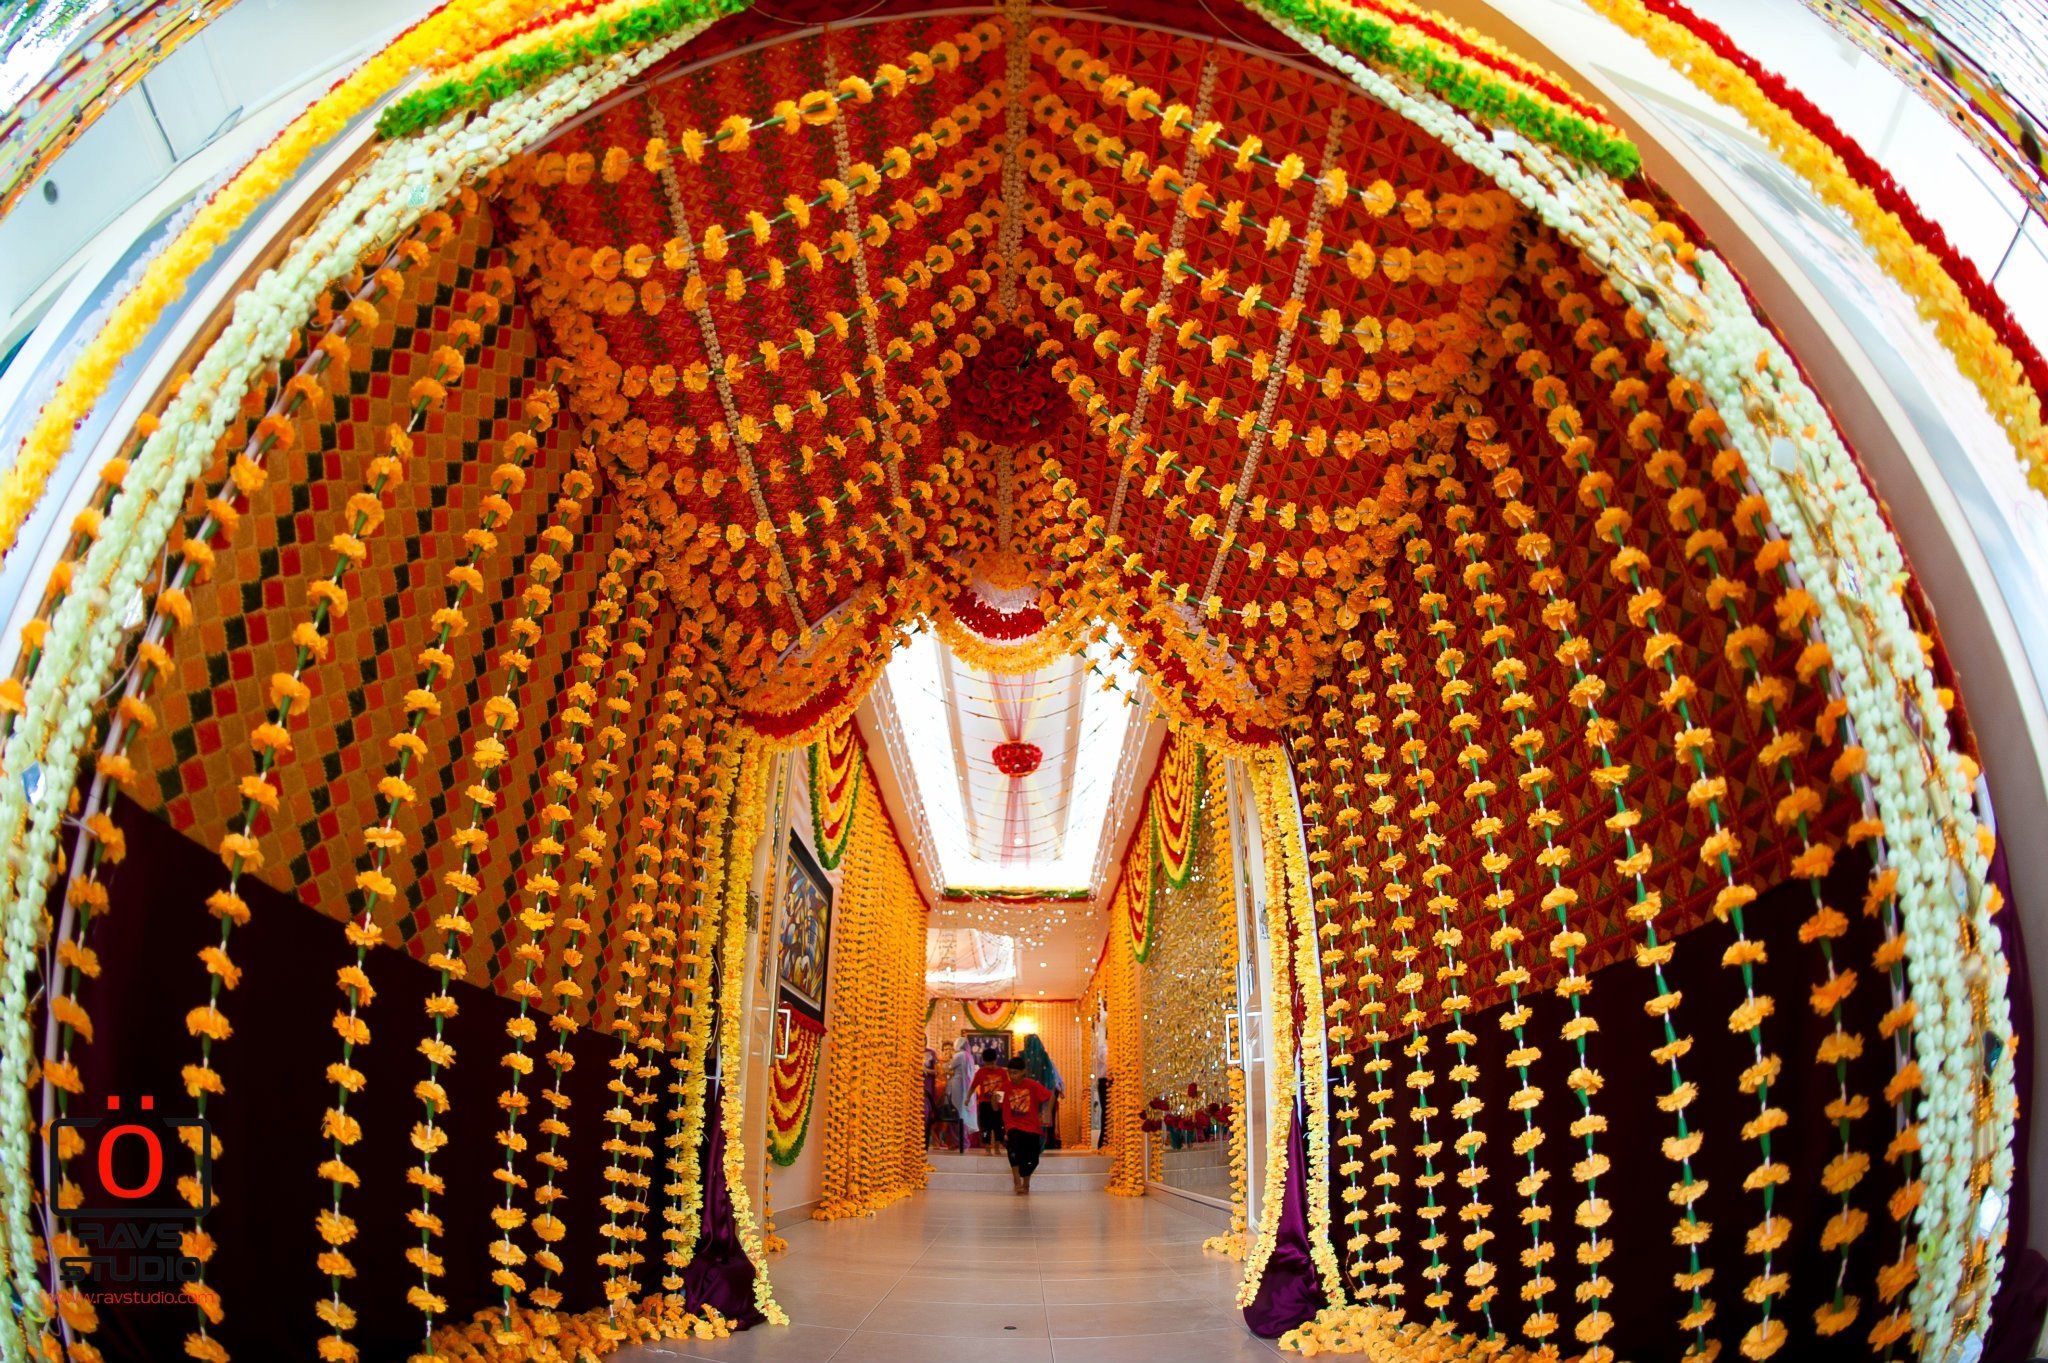 Traditionally decorated entrance to Indian wedding. This